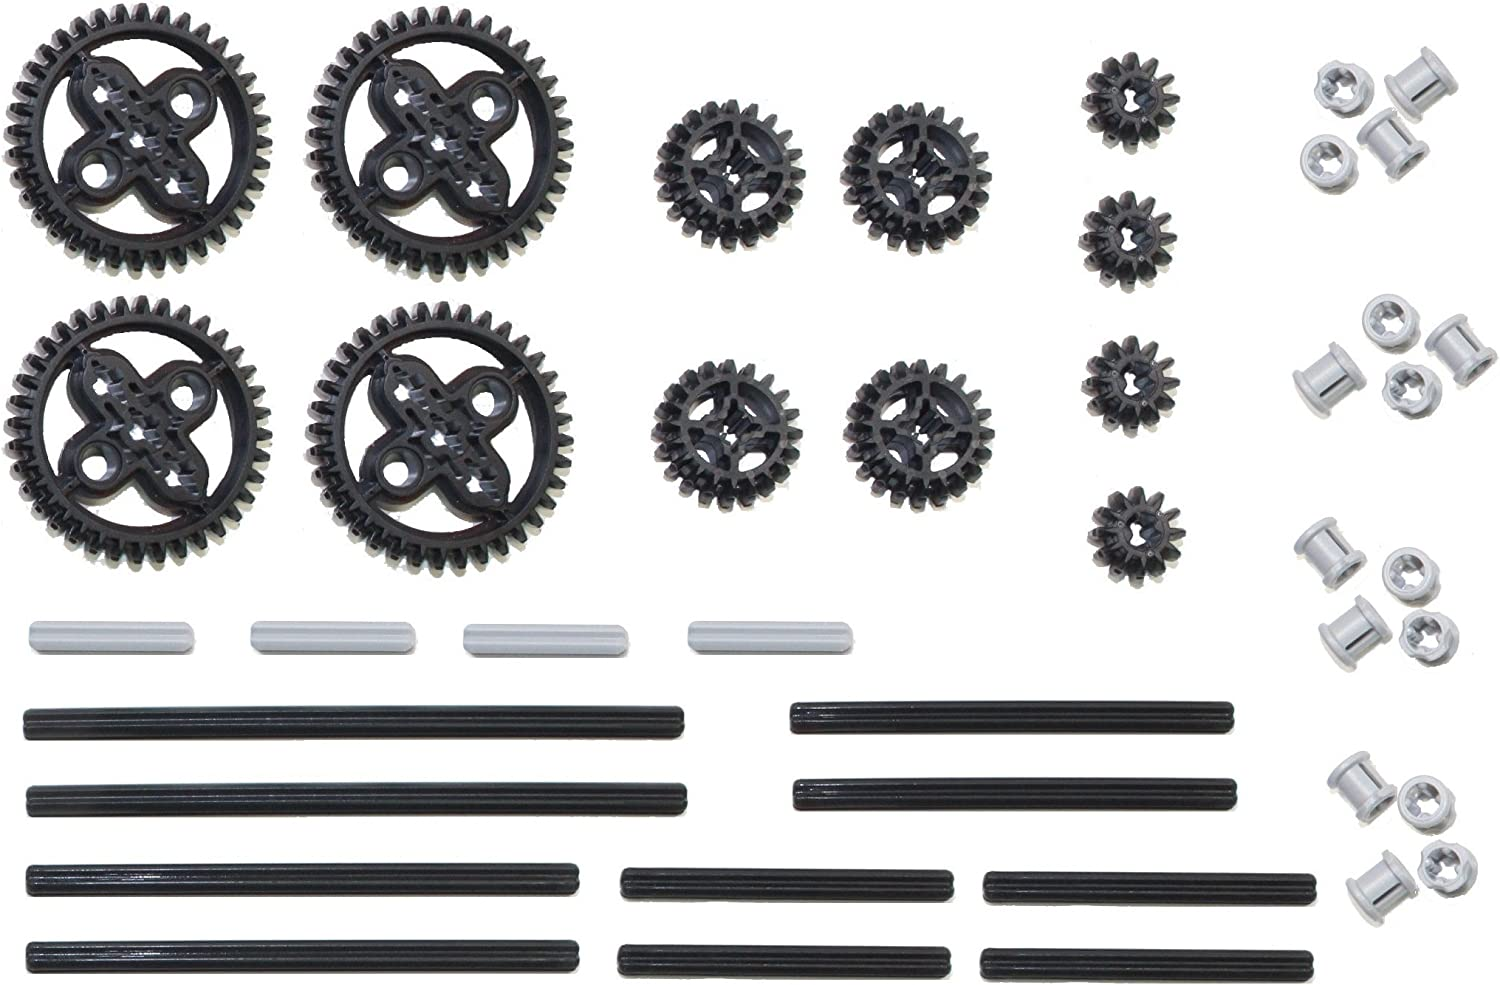 4x Black Lego Technic 36 Tooth Double Bevel Gear